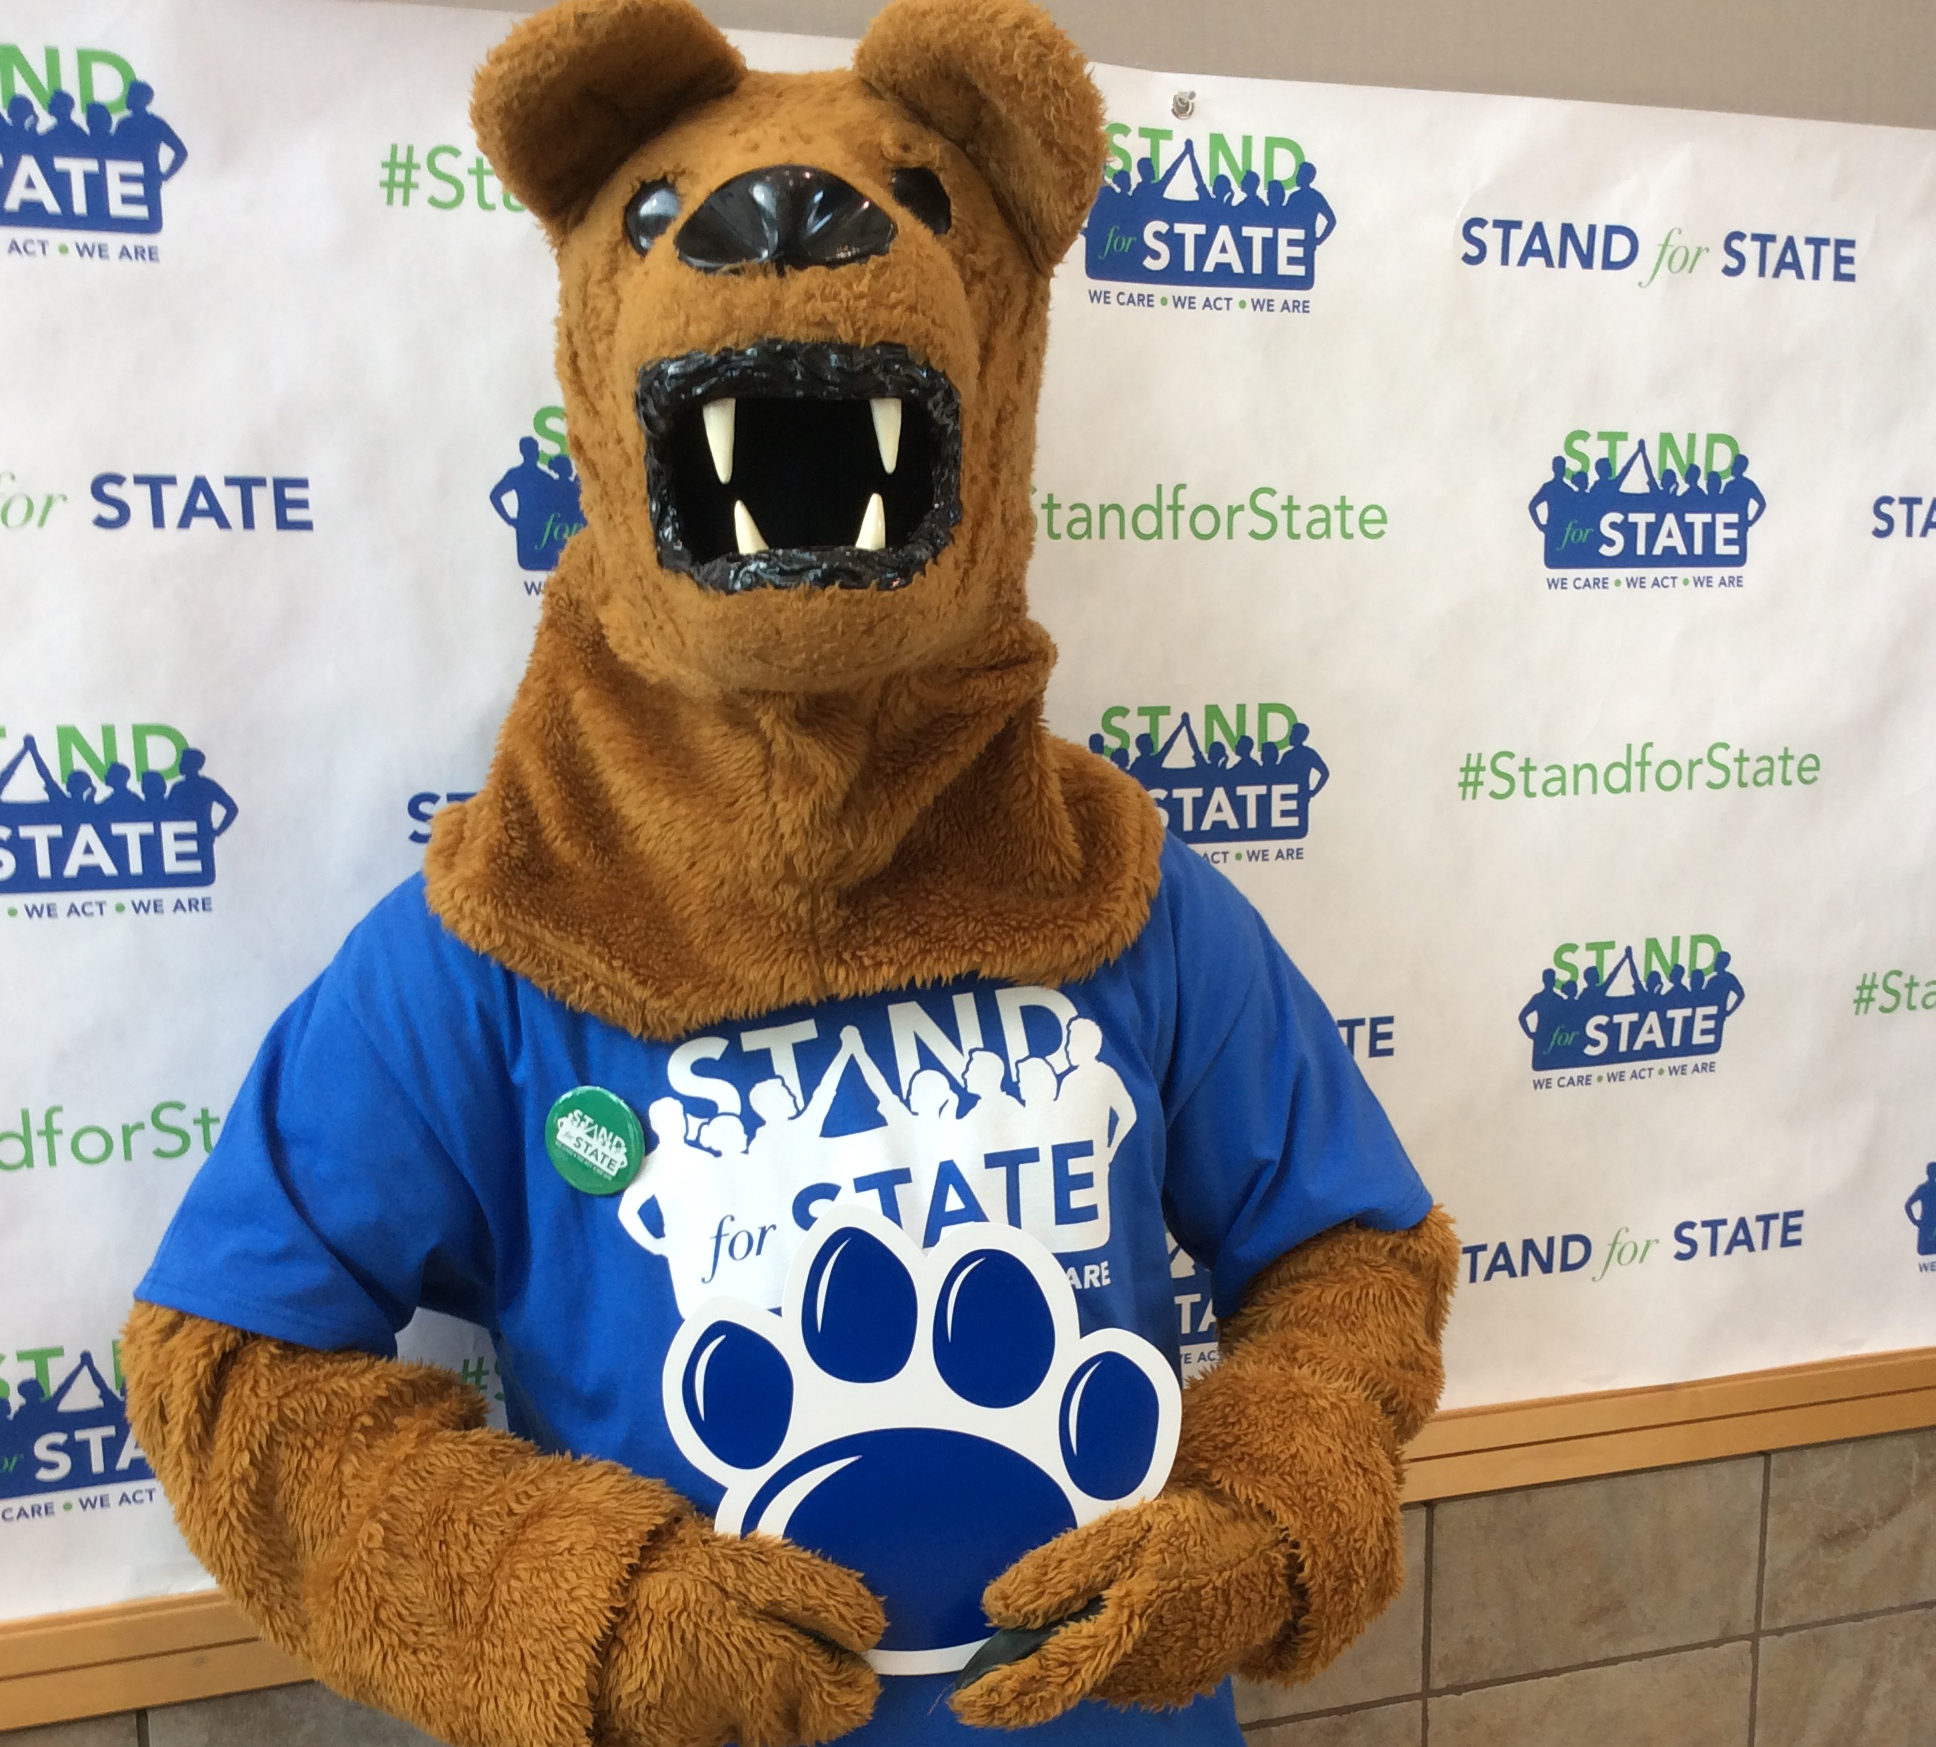 The Nittany Lion mascot wearing a Stand for State T-shirt